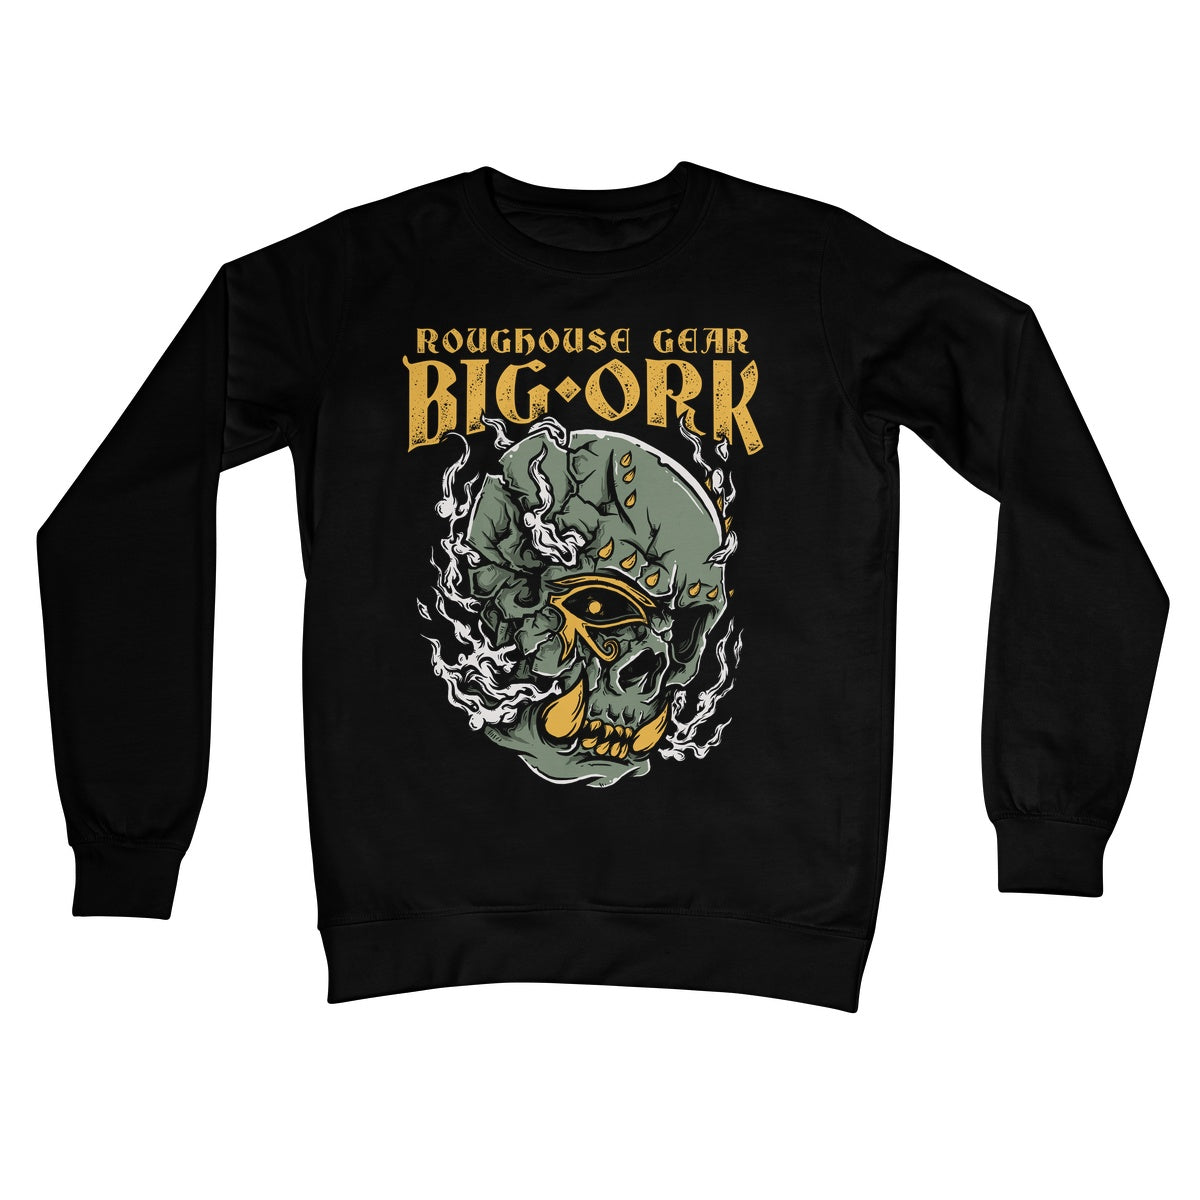 The Awakening Big Ork Crew Neck Sweatshirt